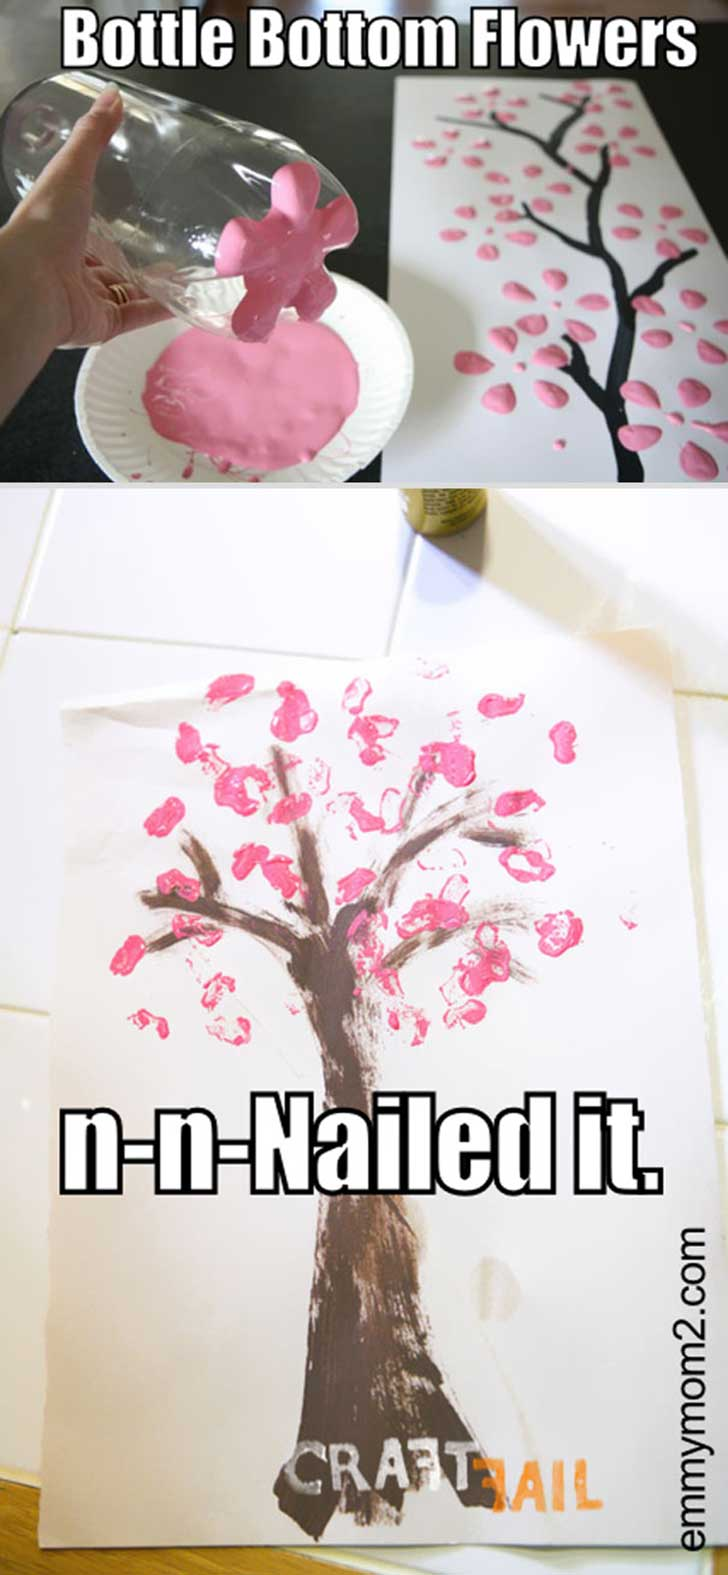 pinterest-craft-fails-4